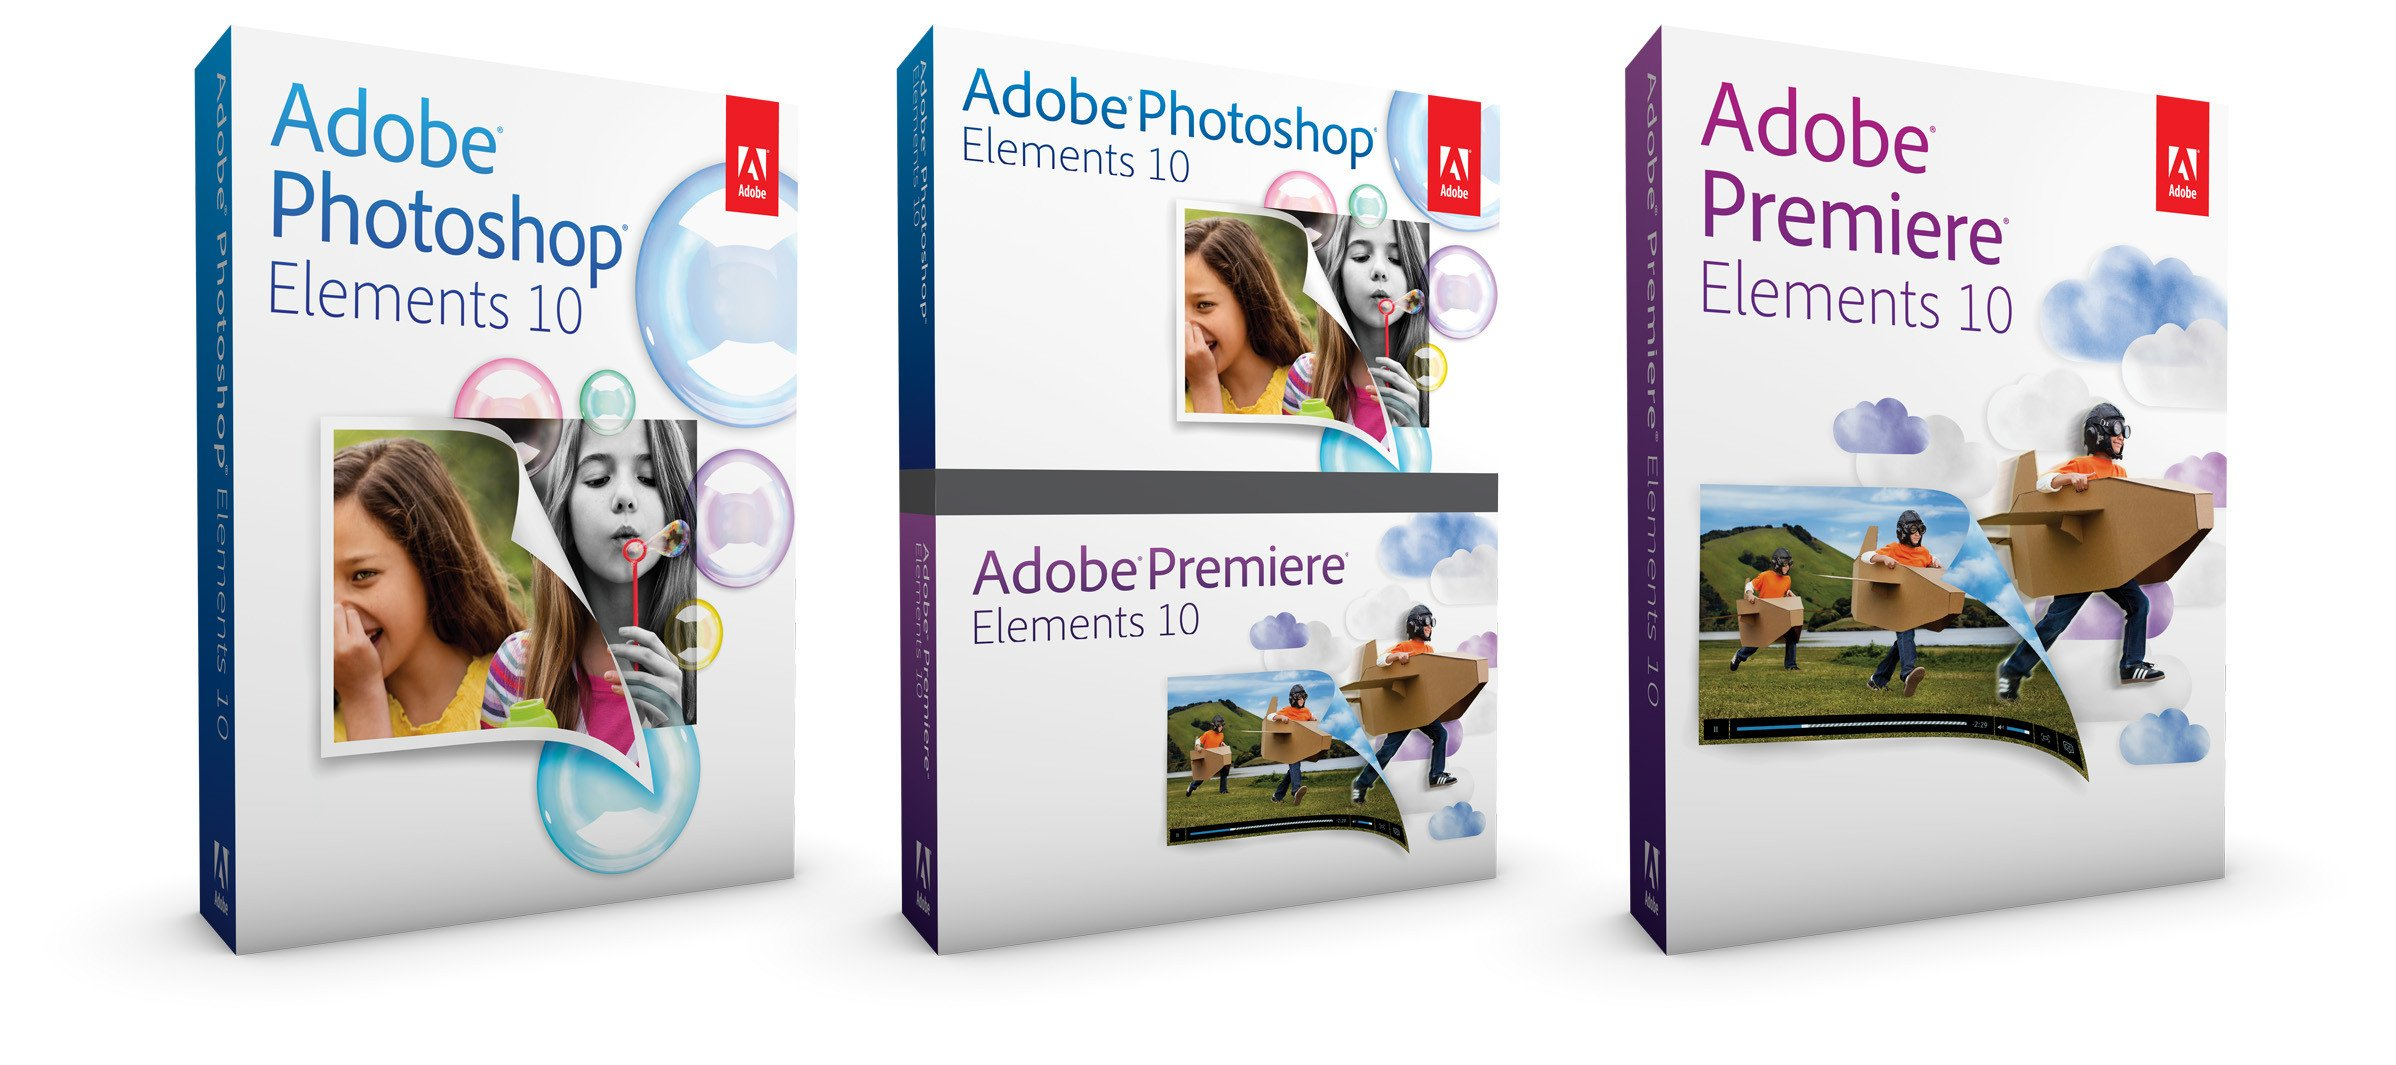 Adobe_Photoshop Elements 10 ve Premiere Elements 10